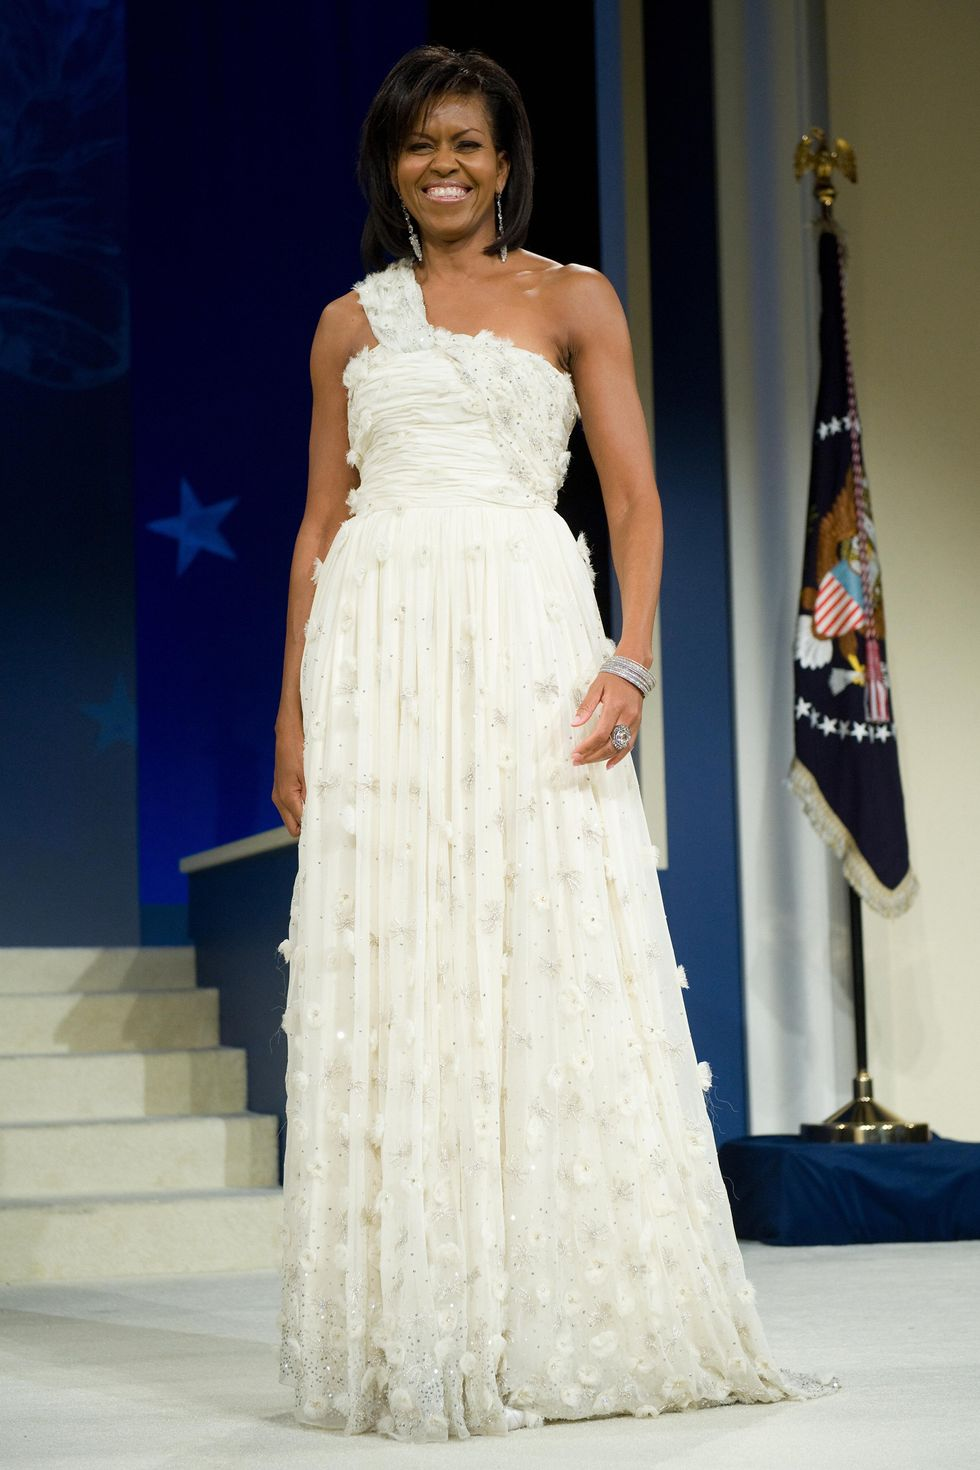 Michelle Obama 2009 Inauguration Ball